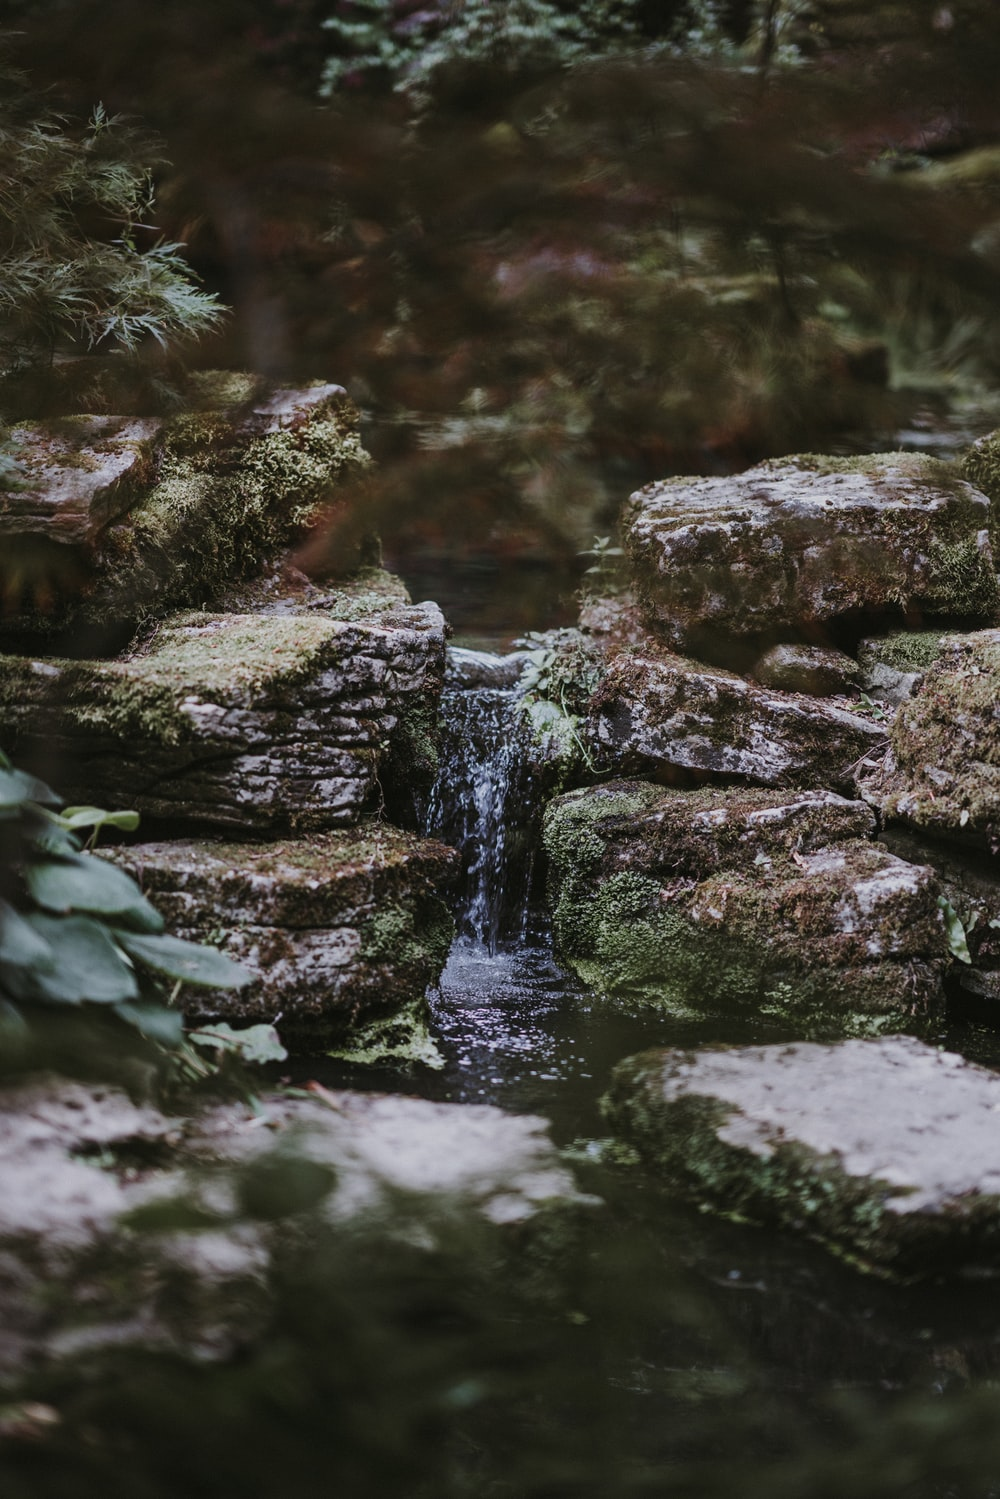 Stream flowing down rocks | HD photo by Annie Spratt